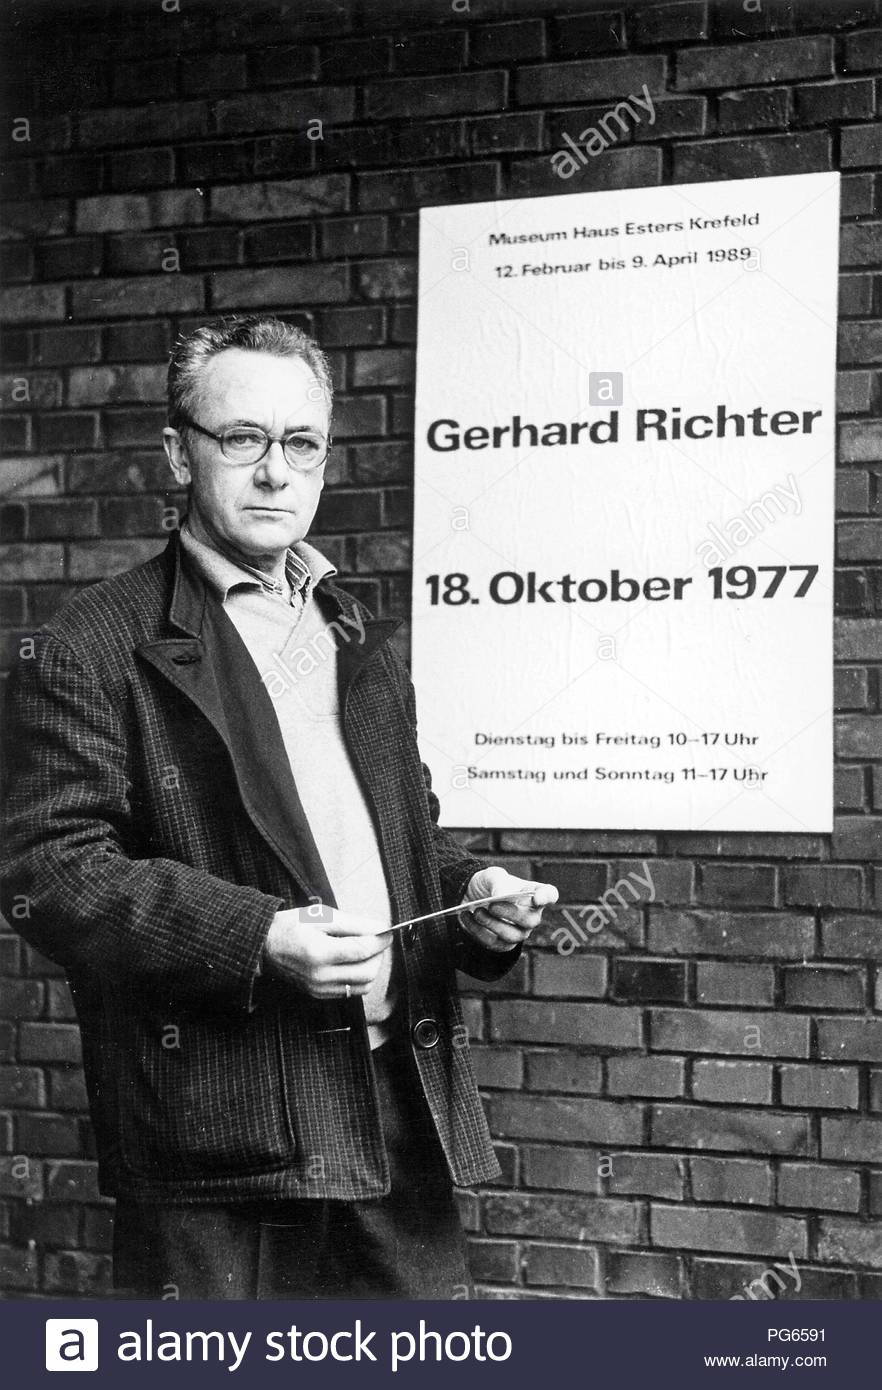 Gerhard Richter (born 1932), German painter and printmaker. The image was made on the occasion of his exhibition '18. October 1977' at the Museum Haus Esters, Krefeld. - Stock Image